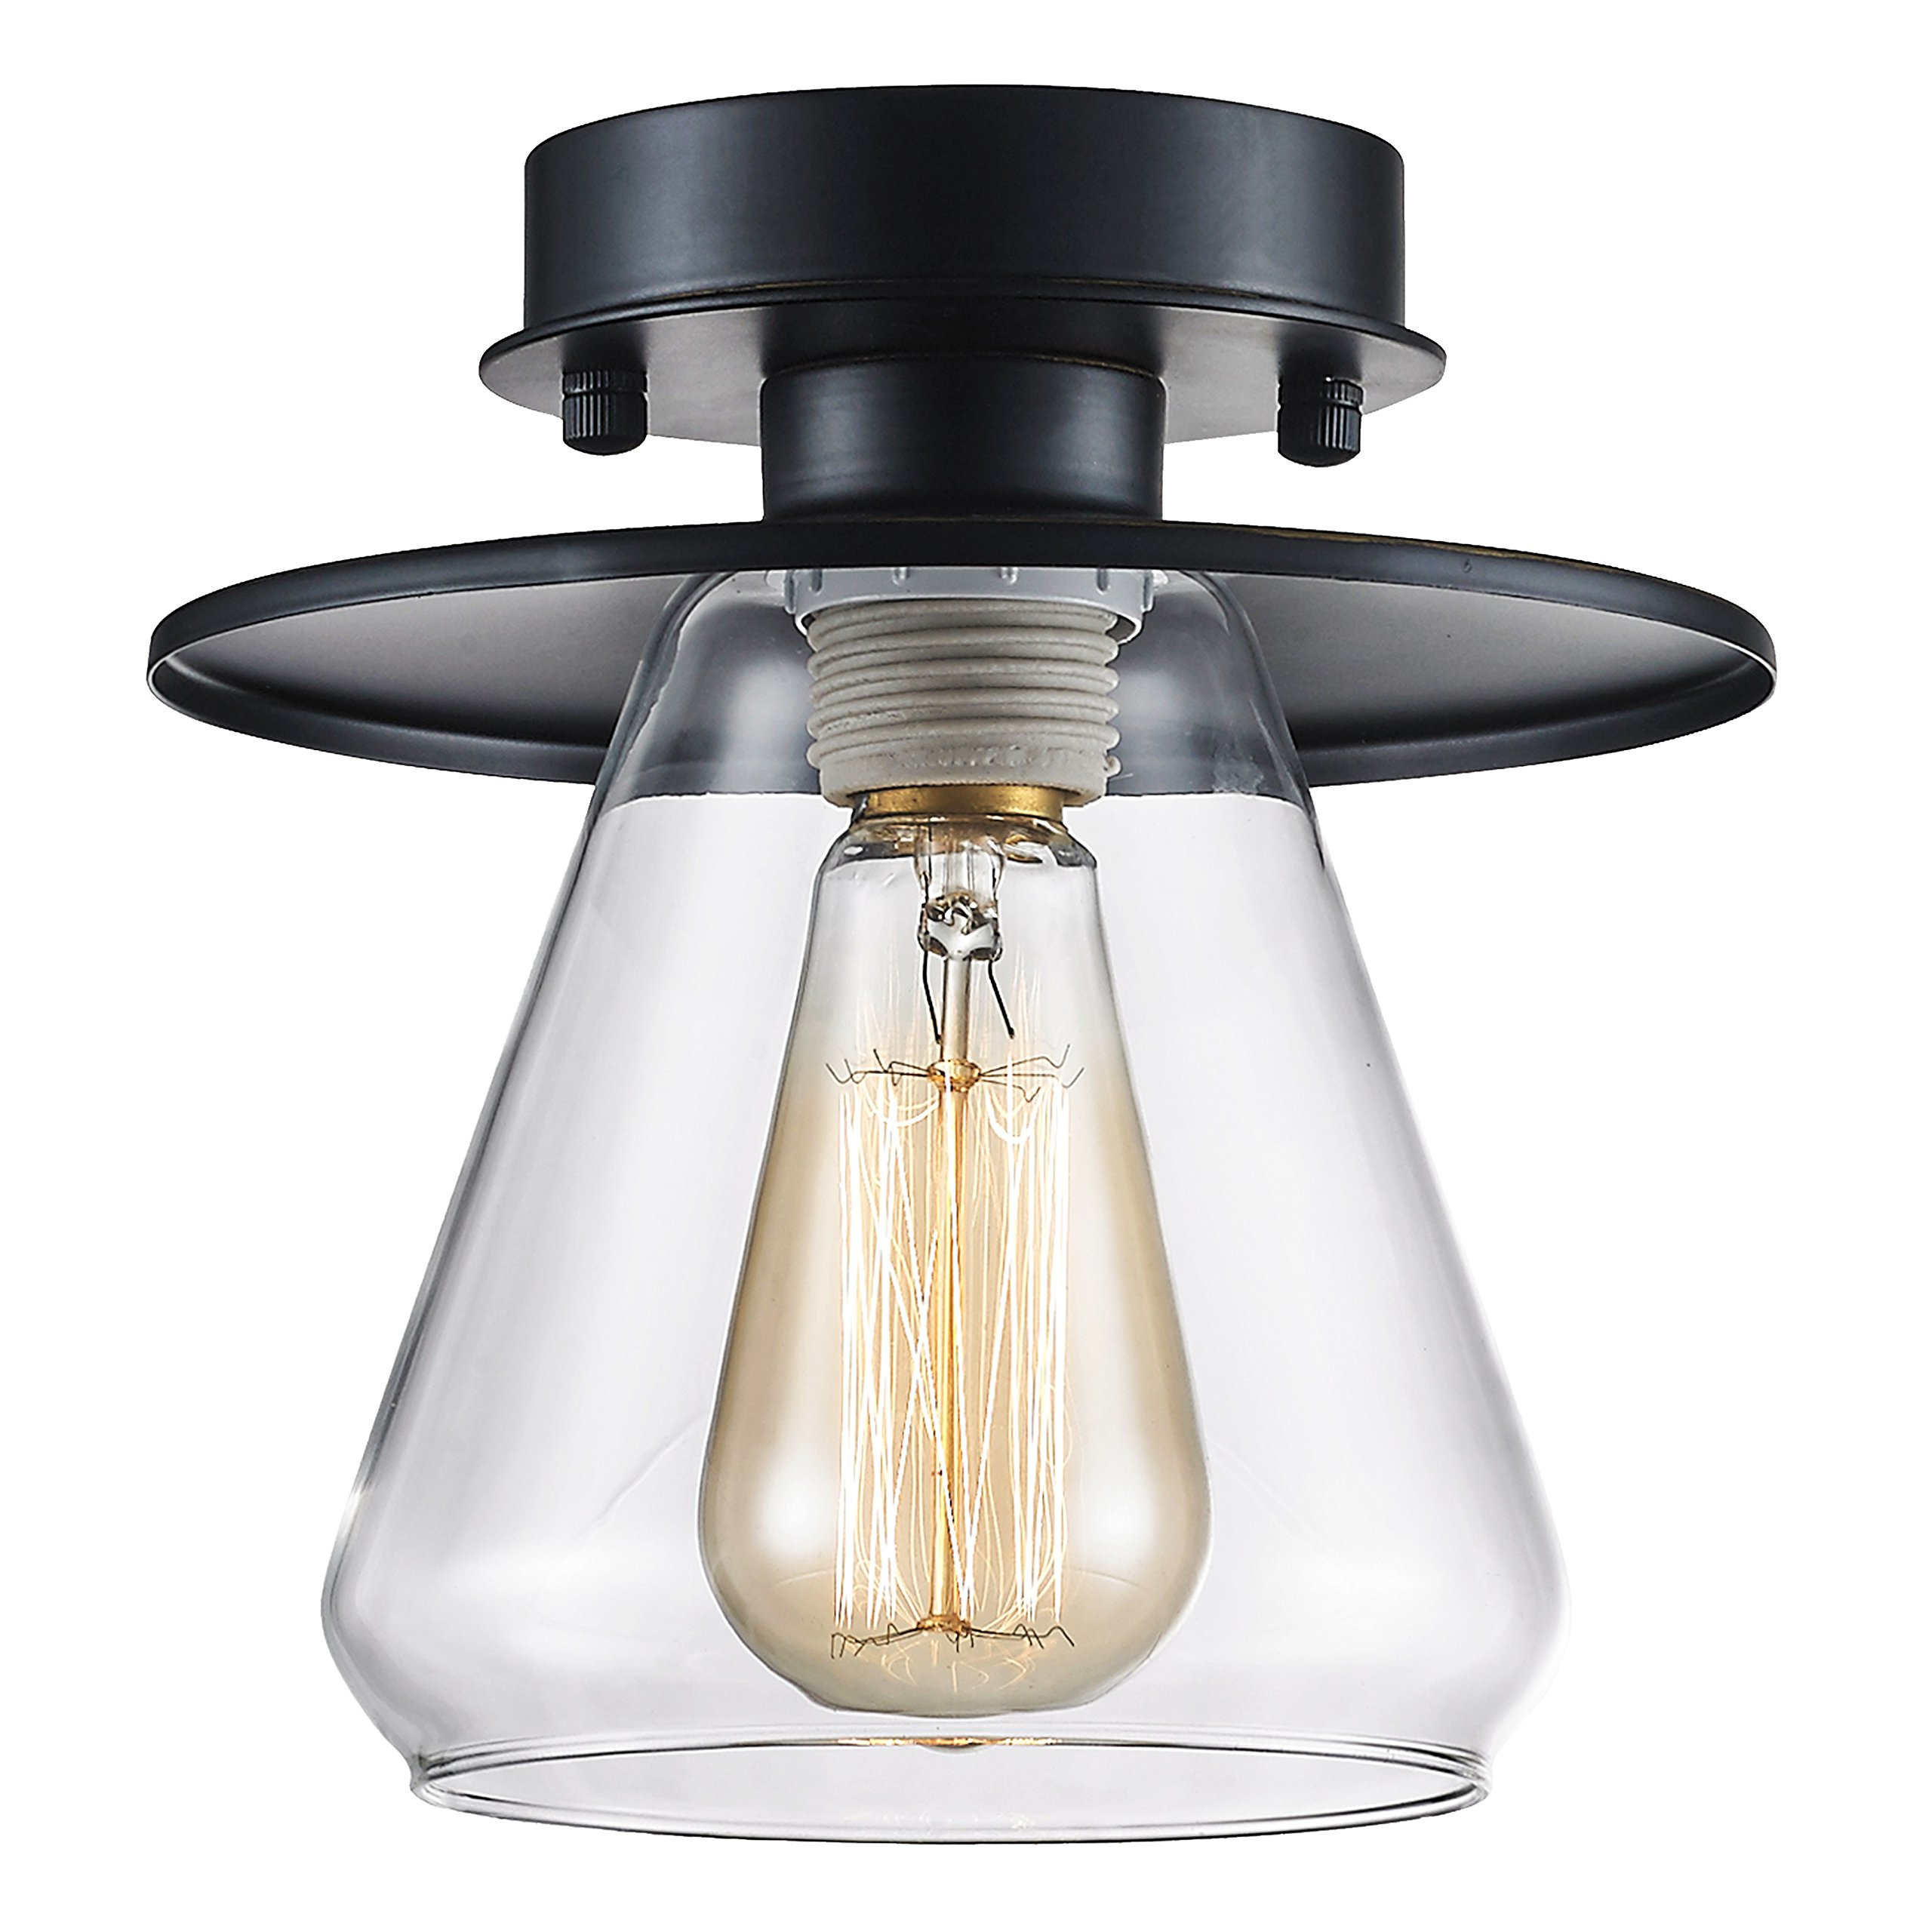 SereneLife Home Lighting Fixture - 6.1'' x 5.9'' Dome Shaped Sculpted Glass Lamp Shade Compact Ceiling Light Accent, Semi Flush Mount with ETL Rated Single Screw-in Bulb Socket (SLLMP3102)